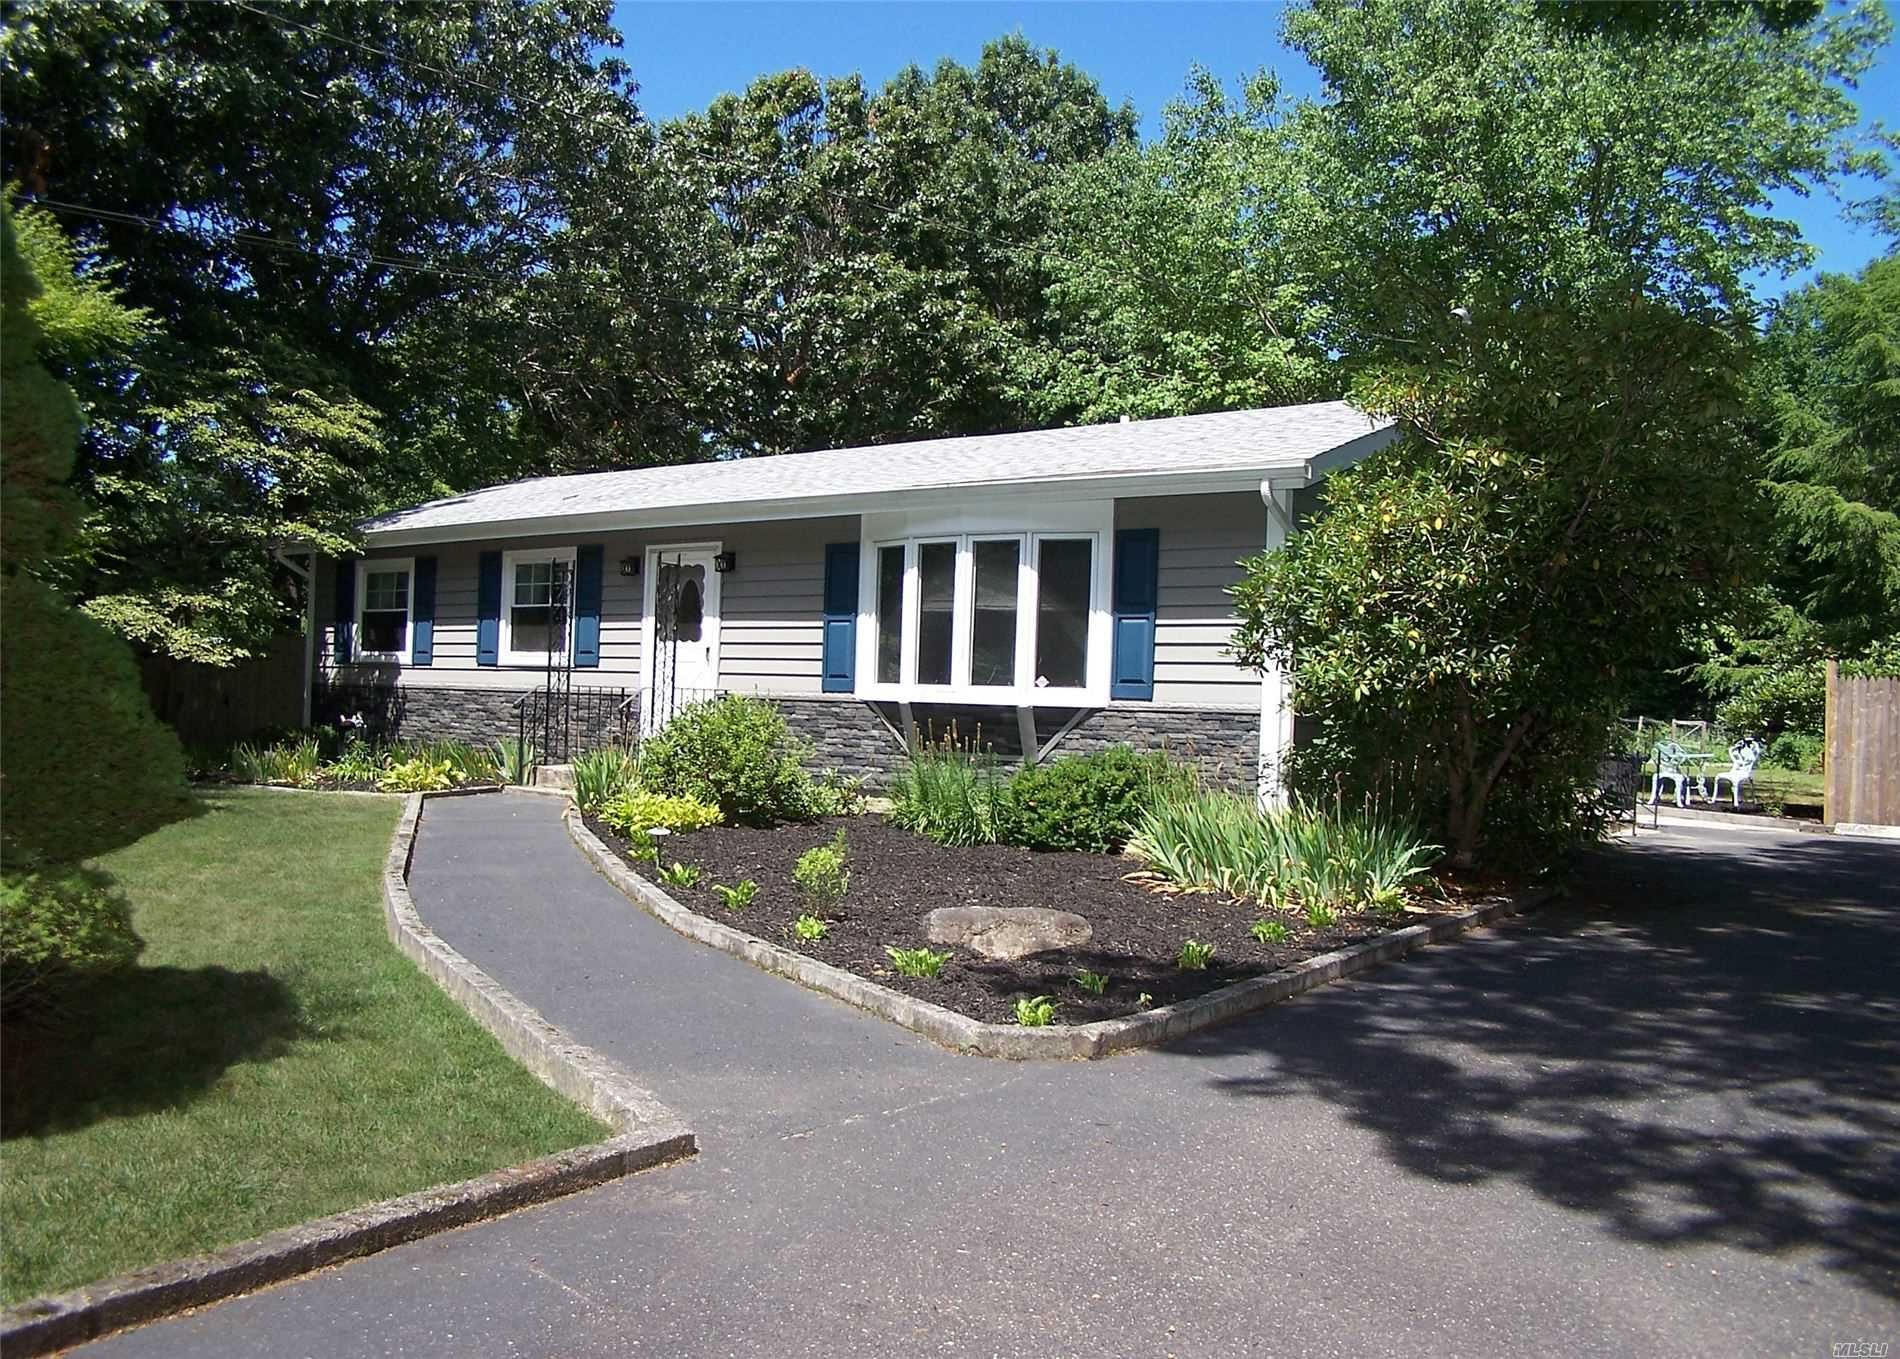 7 Barberry Ln, Middle Island, NY 11953 - MLS#: 3239163